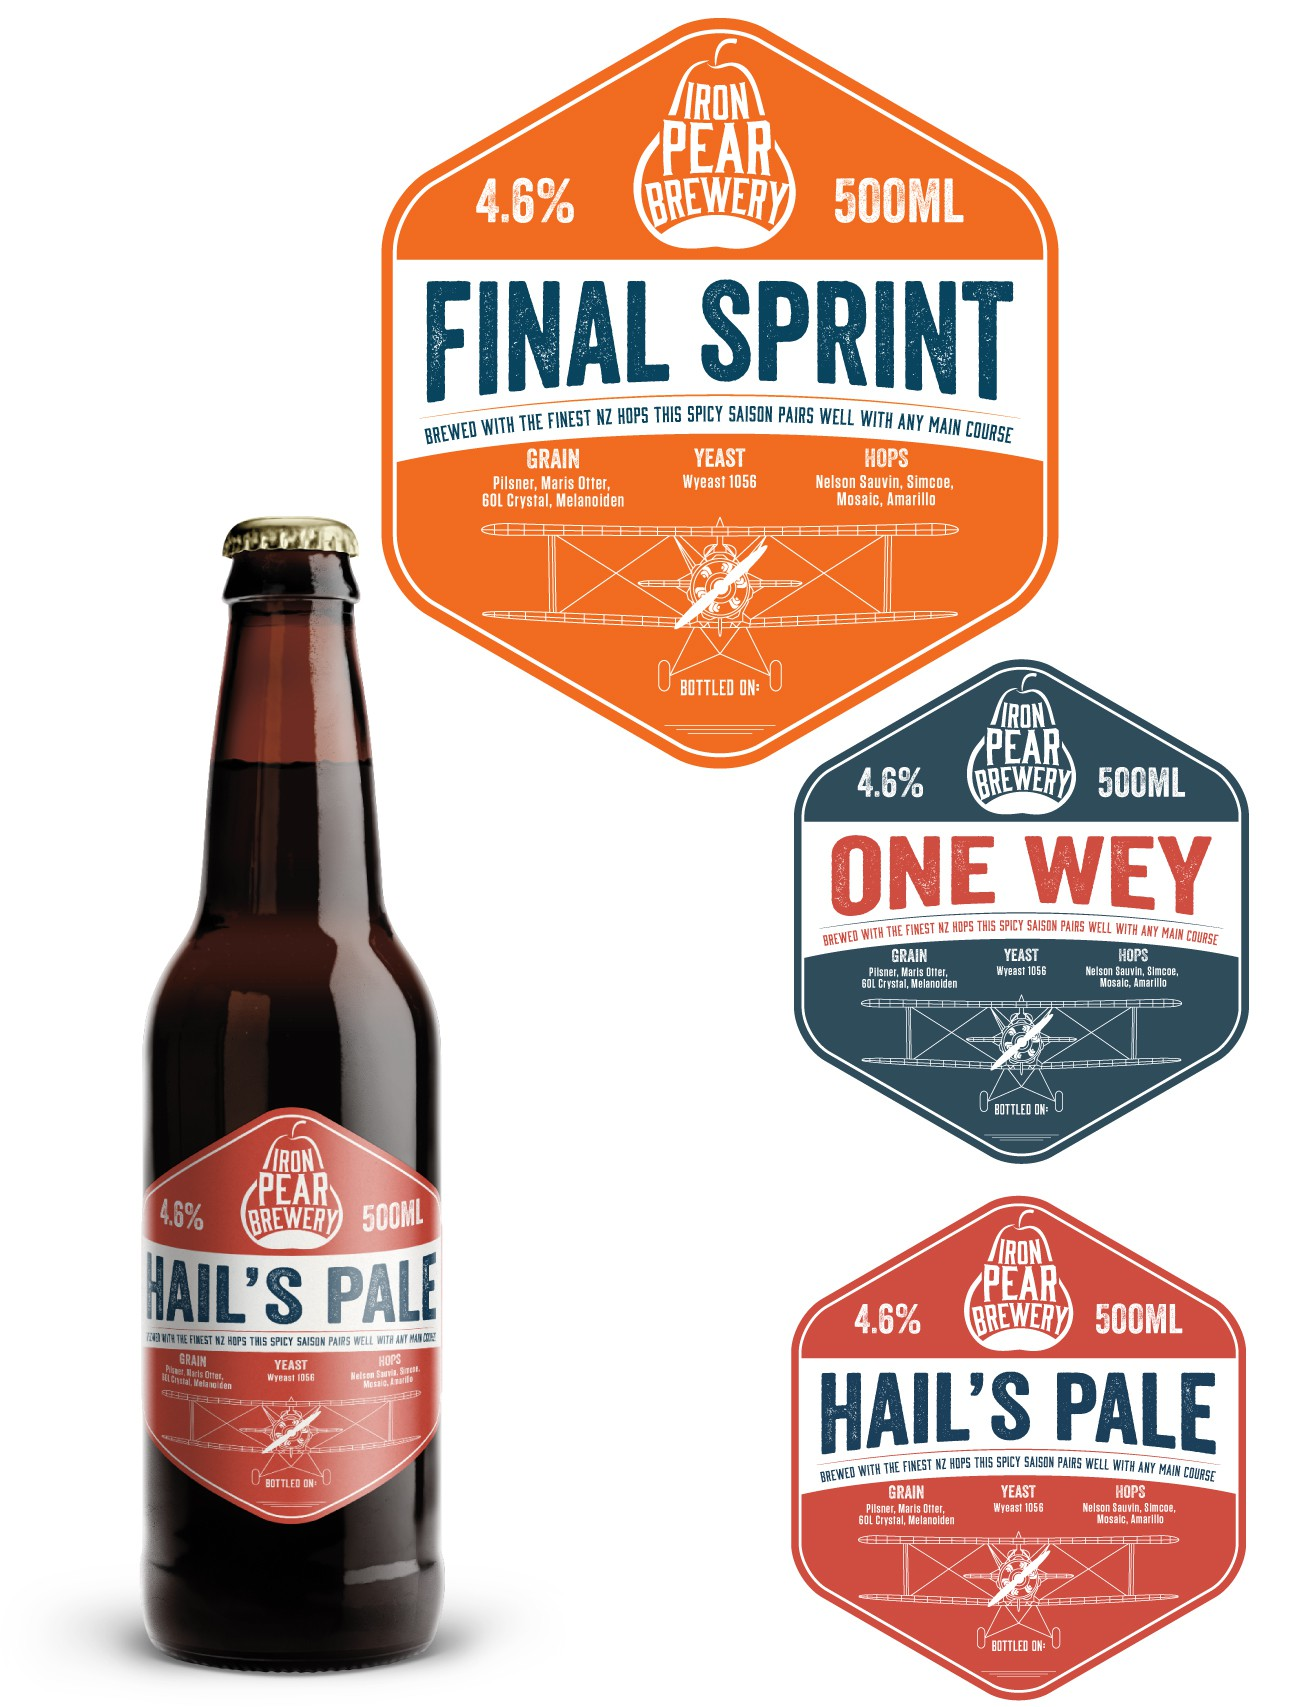 [GUARANTEED] Iron Pear Brewery - bold, precise labels for a UK nanobrewery